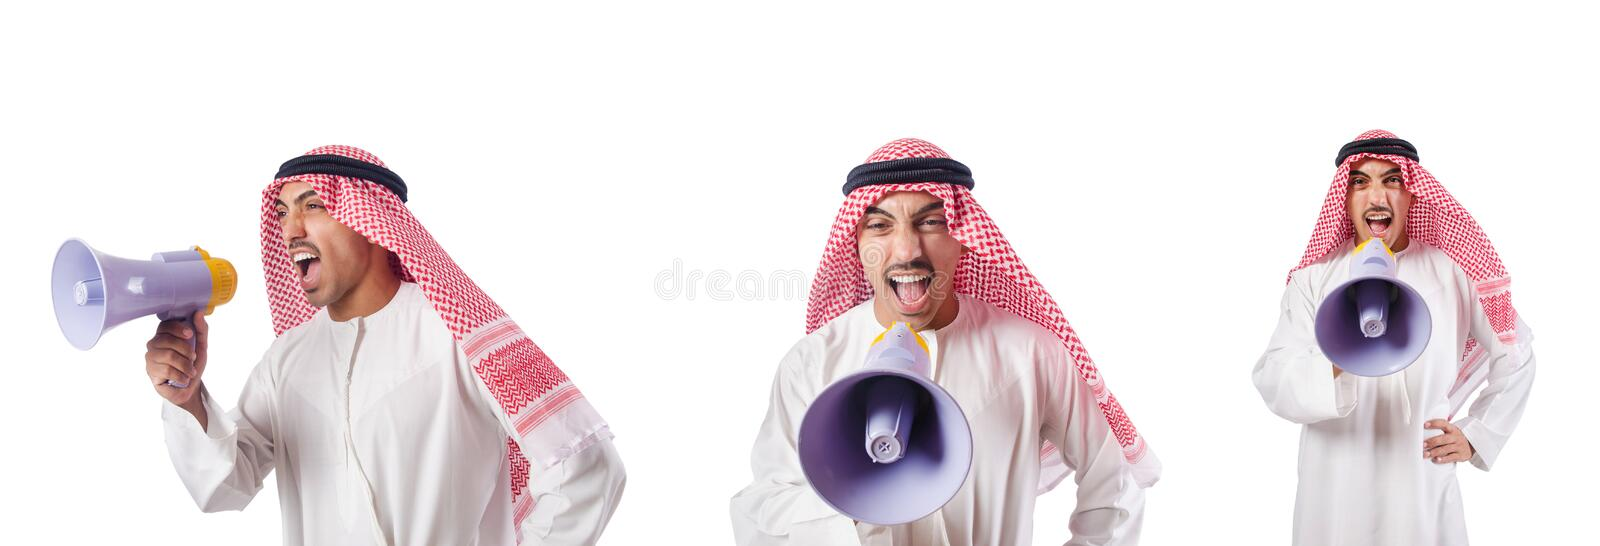 The arab businessman with bullhorn isolated on white. Arab businessman with bullhorn isolated on white royalty free stock images